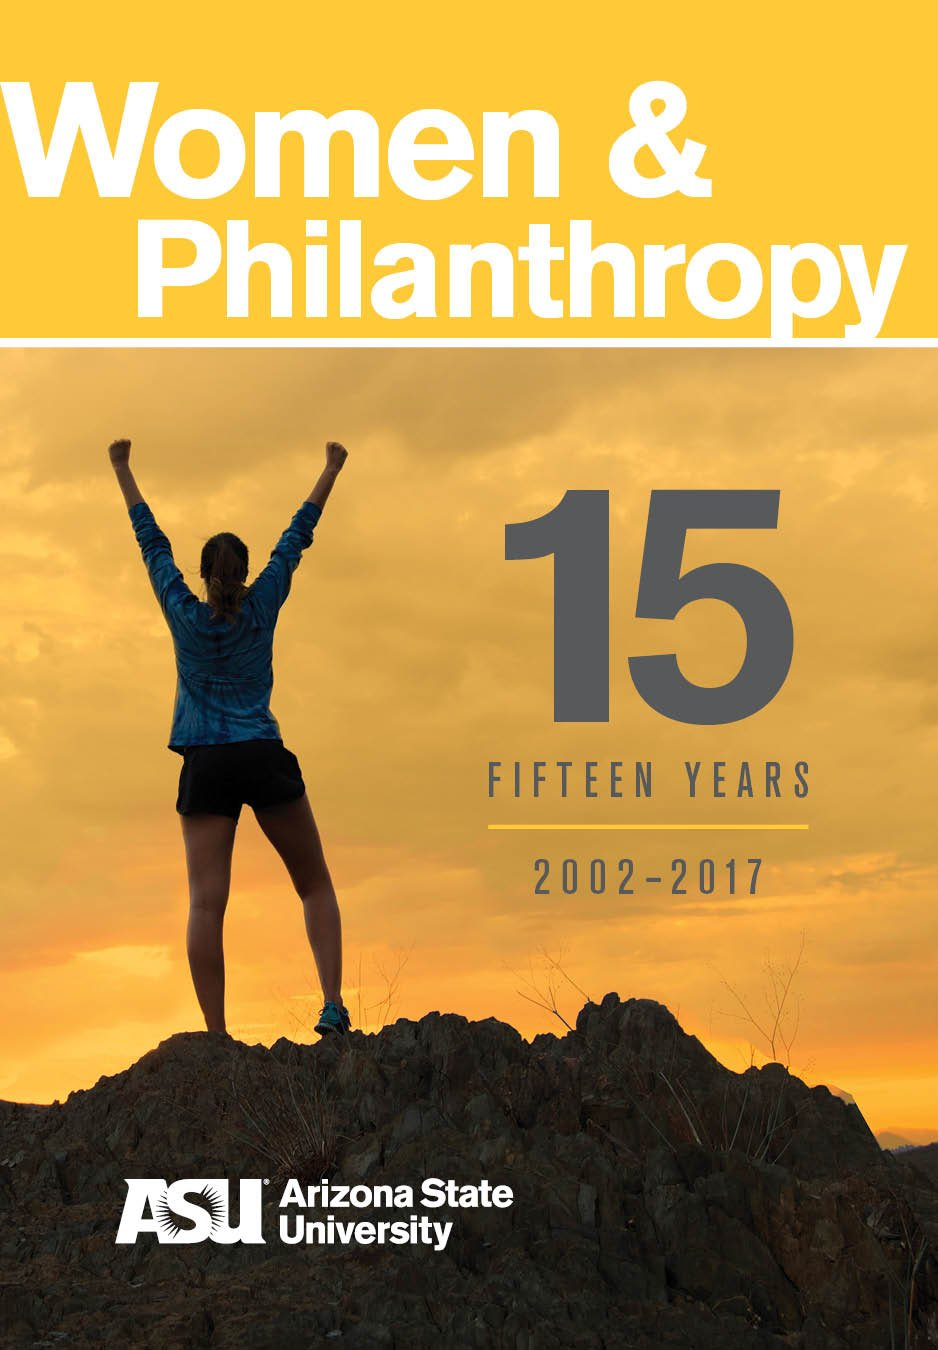 ASU Women and Philanthropy 15th anniversary booklet